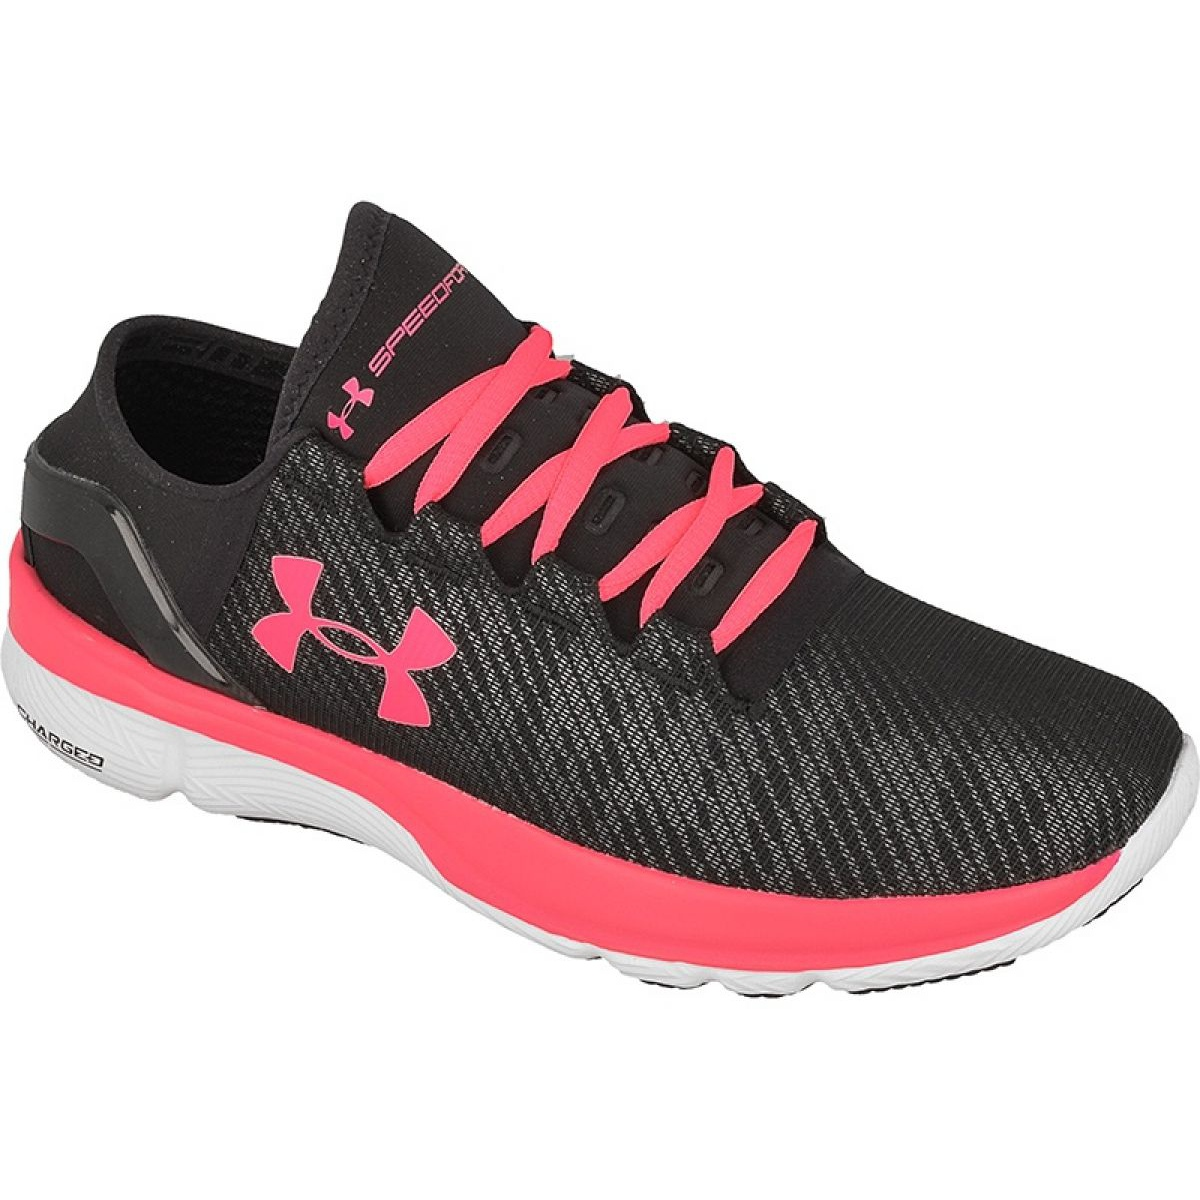 Under Armour Under Armor Running Shoes